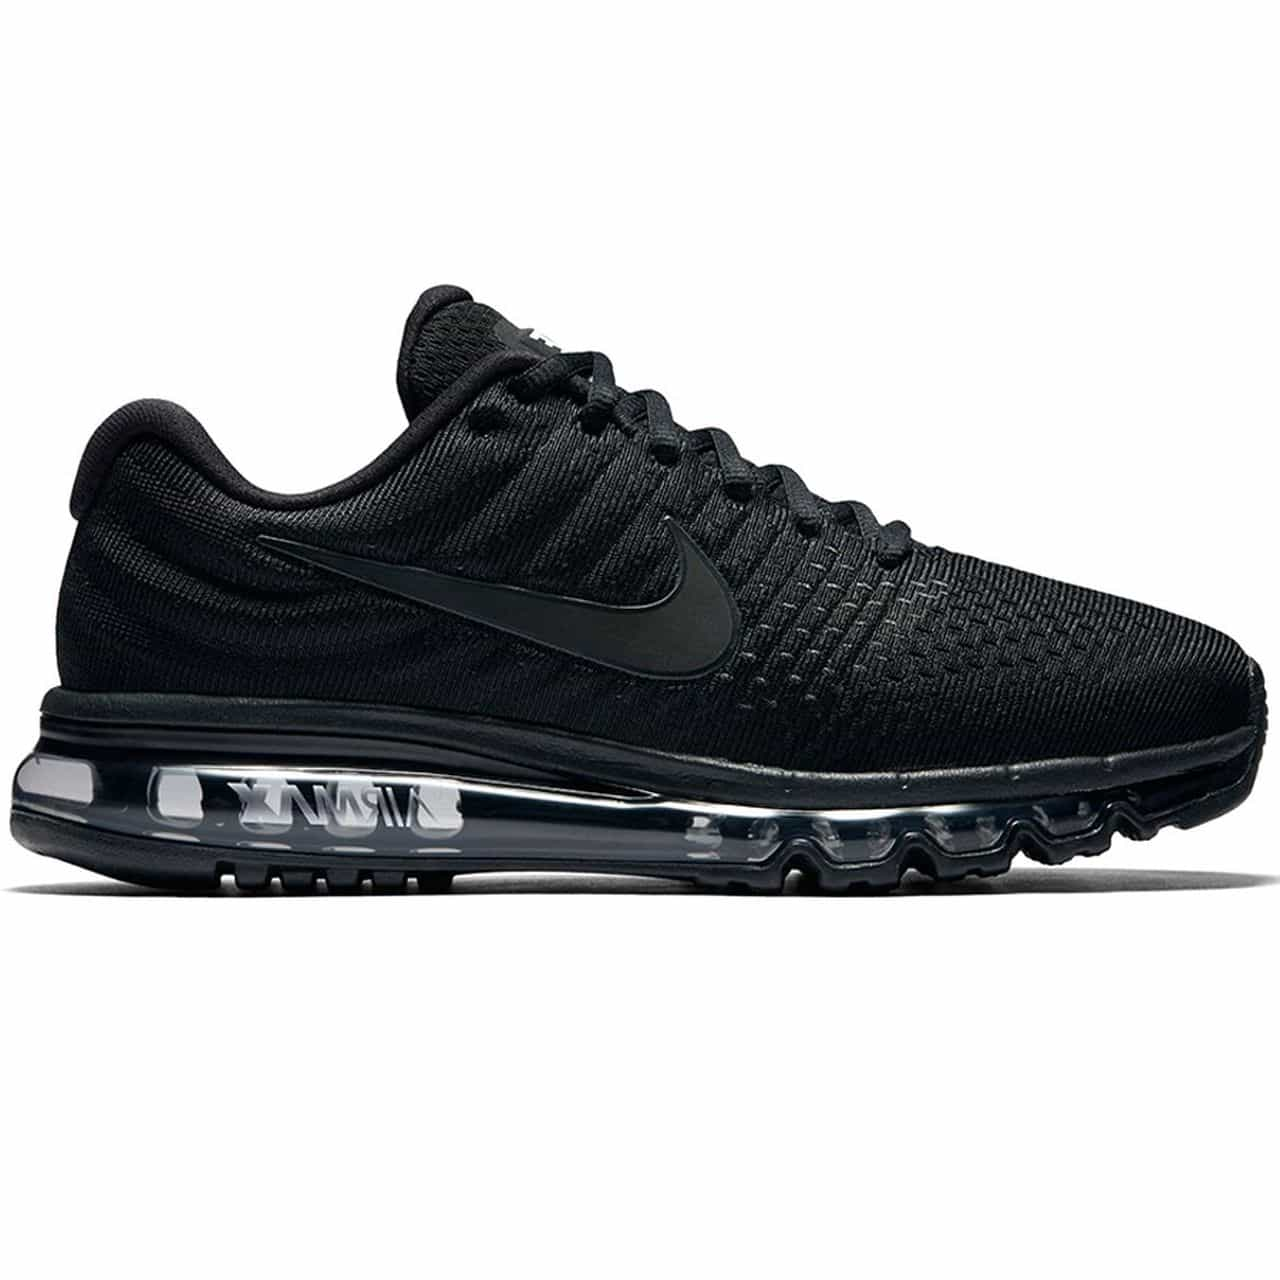 ADIDASI ORIGINALI NIKE AIR MAX 2017 - 849559 004